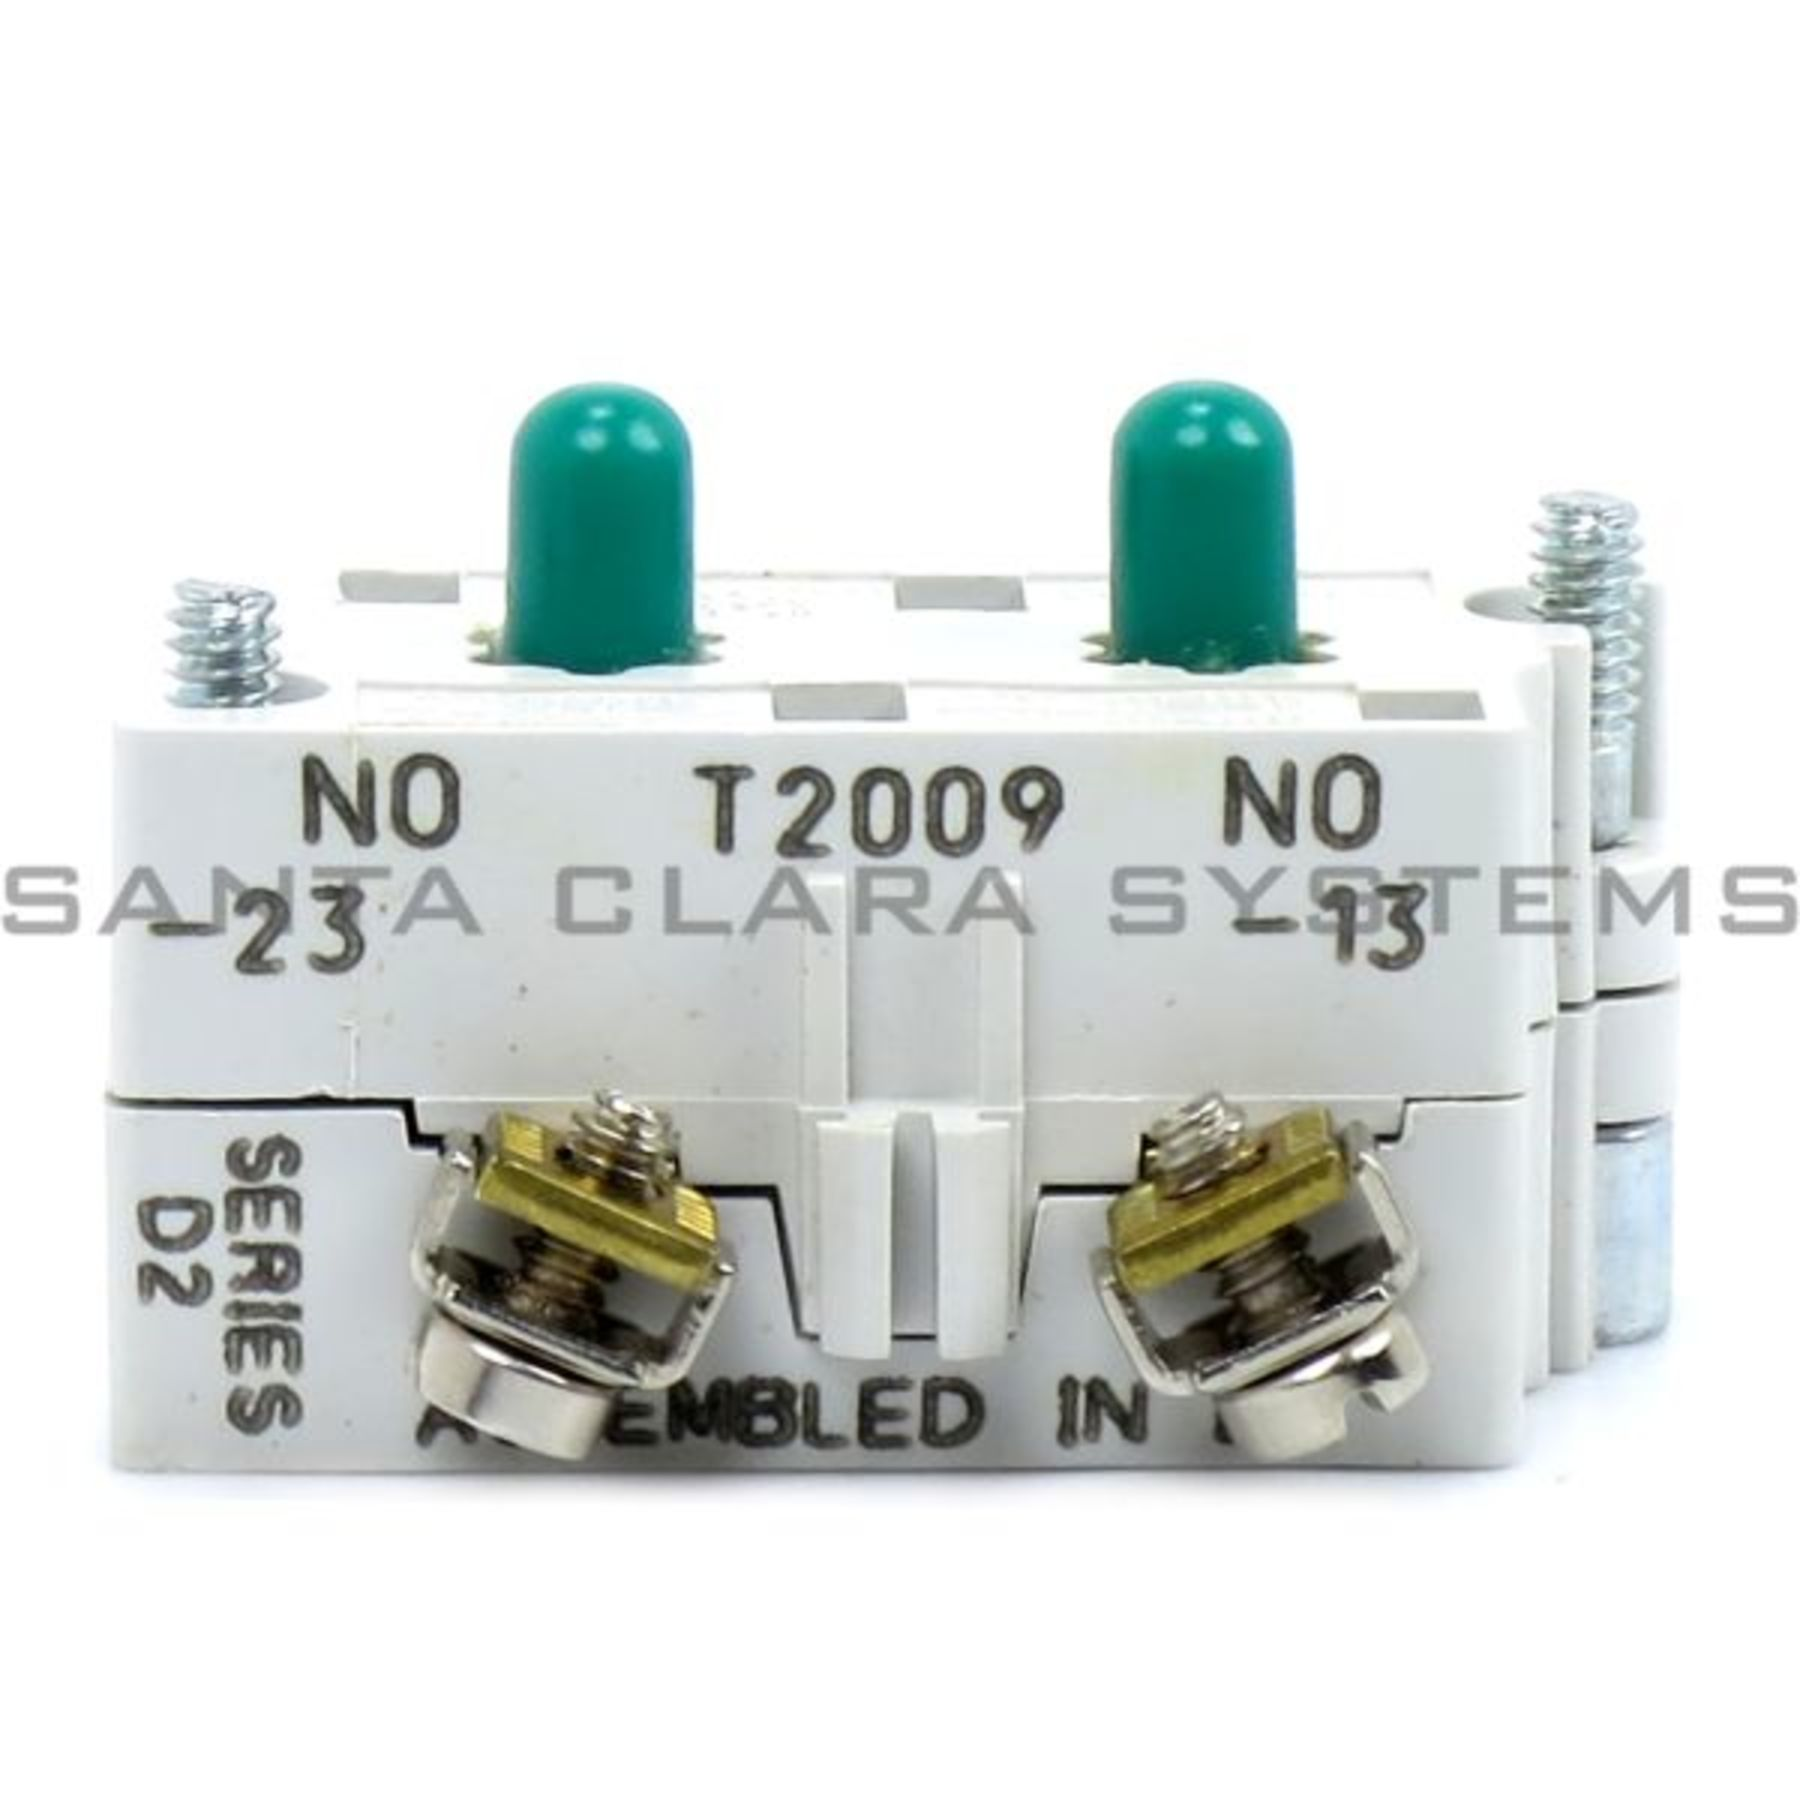 10250t2 Contact Block 10250t 2 In Stock Ships Today Santa Clara Keypad Combination Lock Circuit Cutler Hammer Product Image